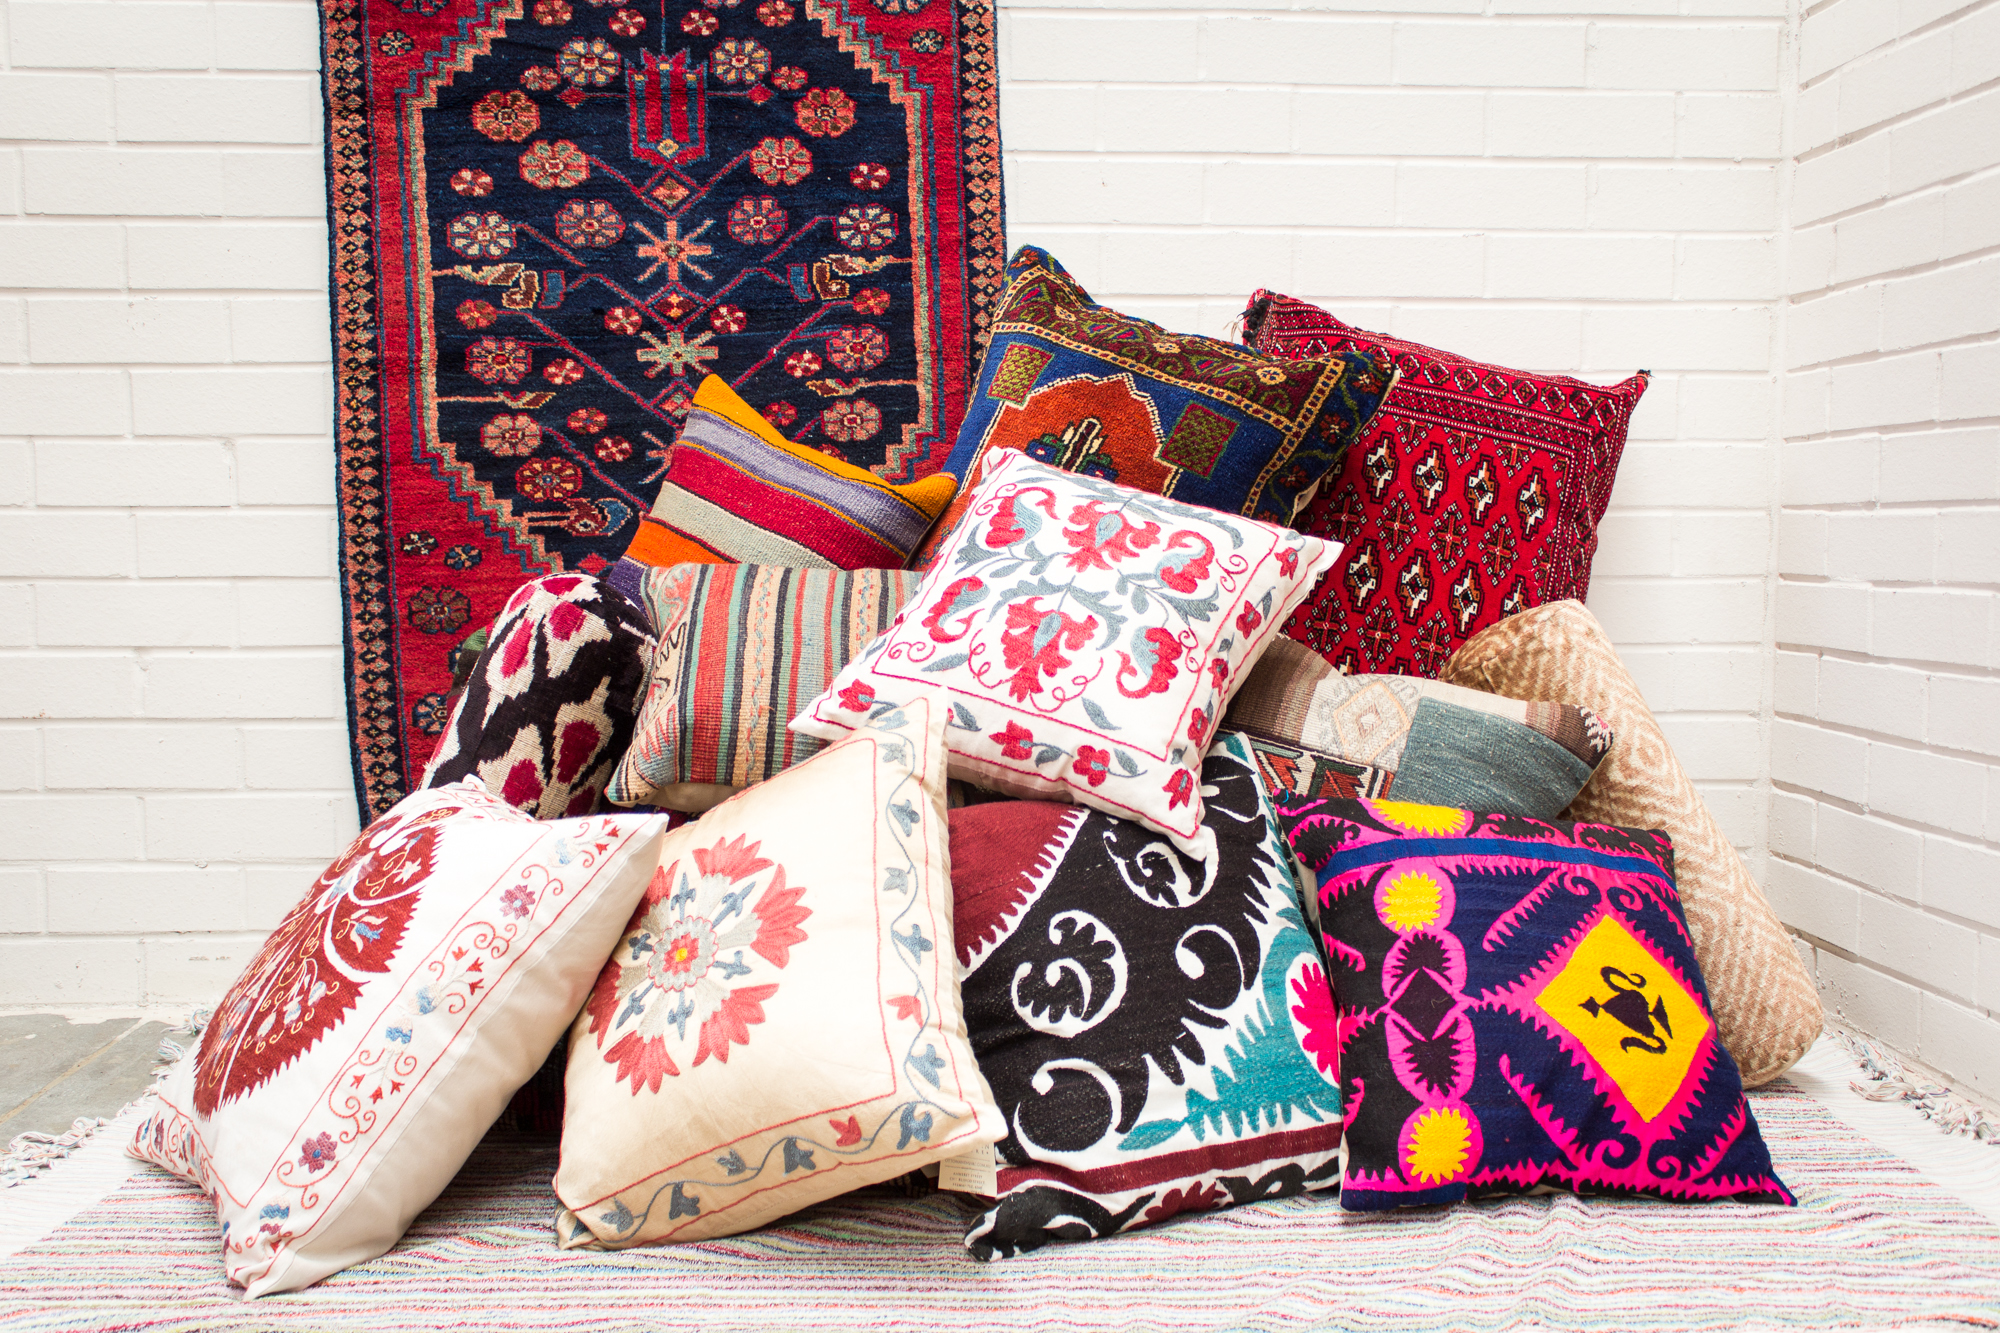 Turkish and Ottoman empire Cushions, rug fragments, kilims and suzani